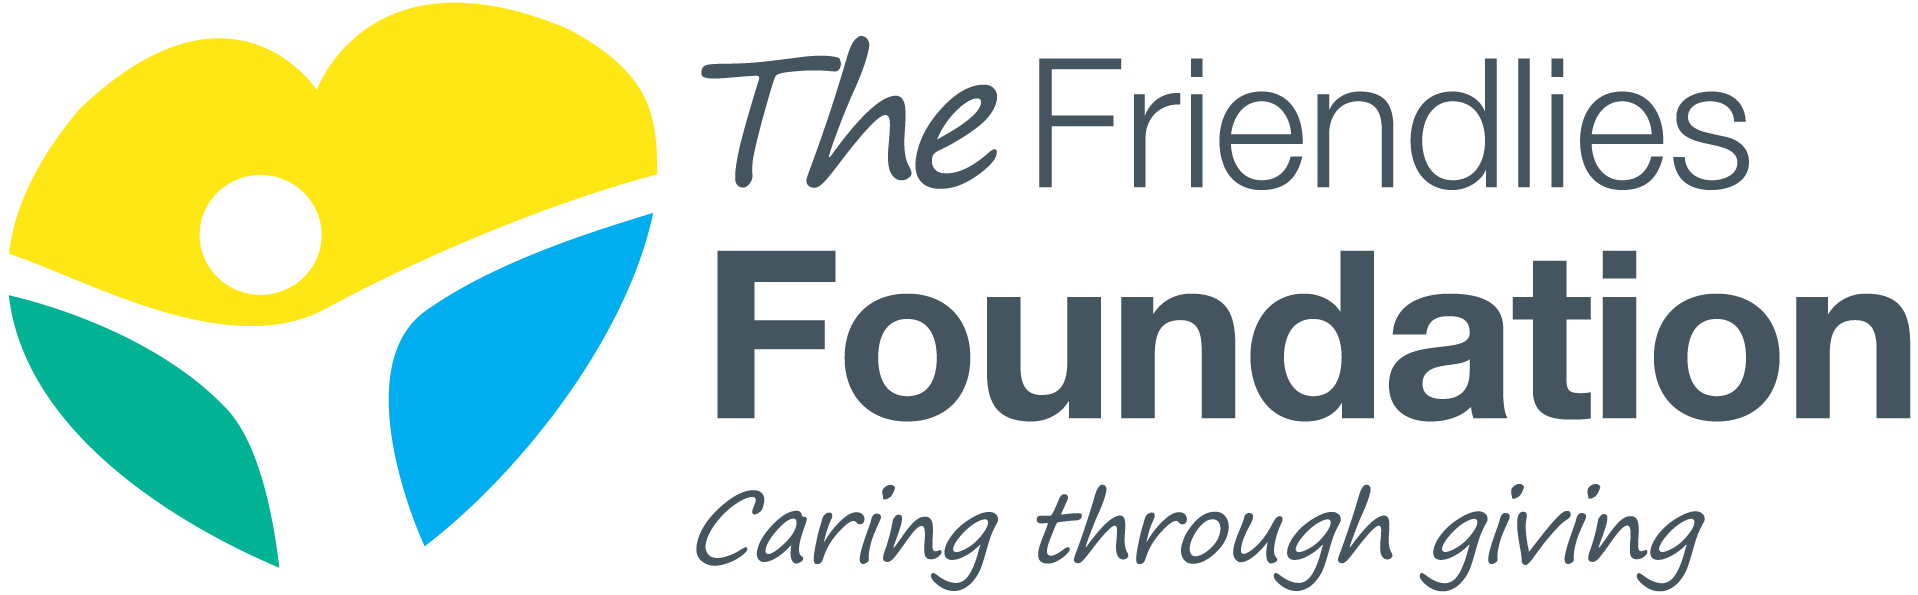 The Friendlies Foundation